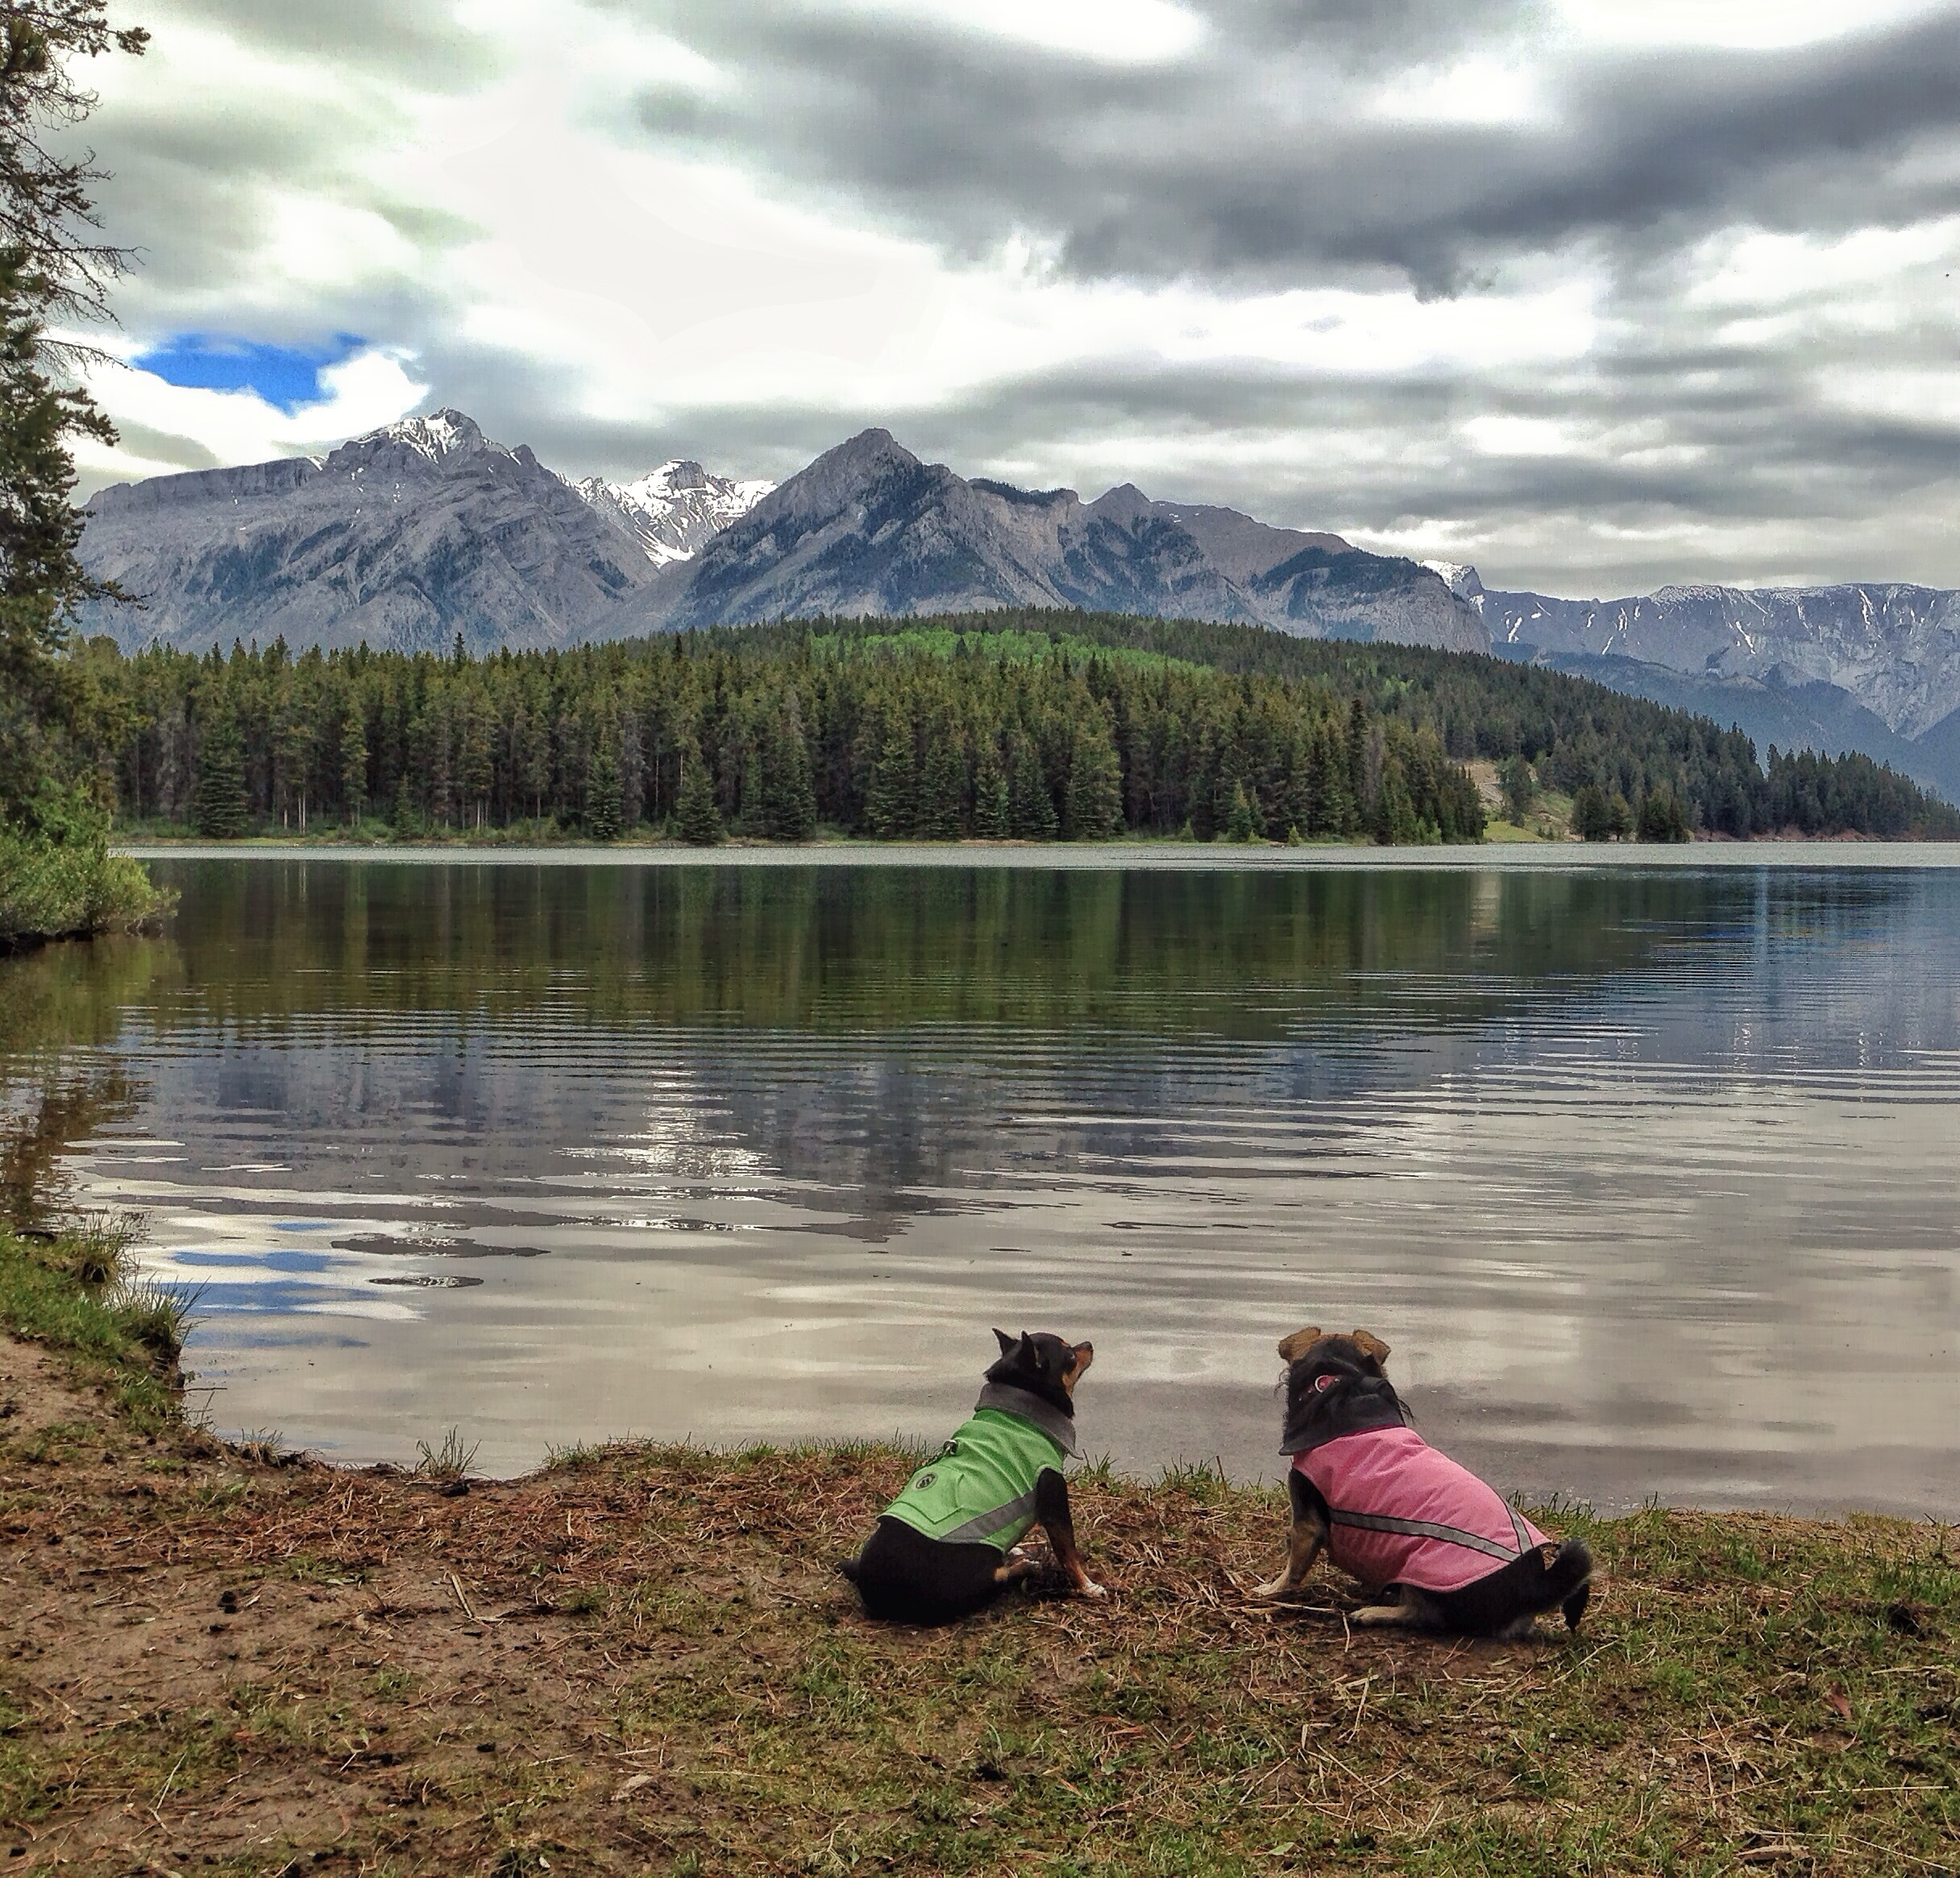 Becca and Delgado contemplate Two Jack Lake in Banff National Park.